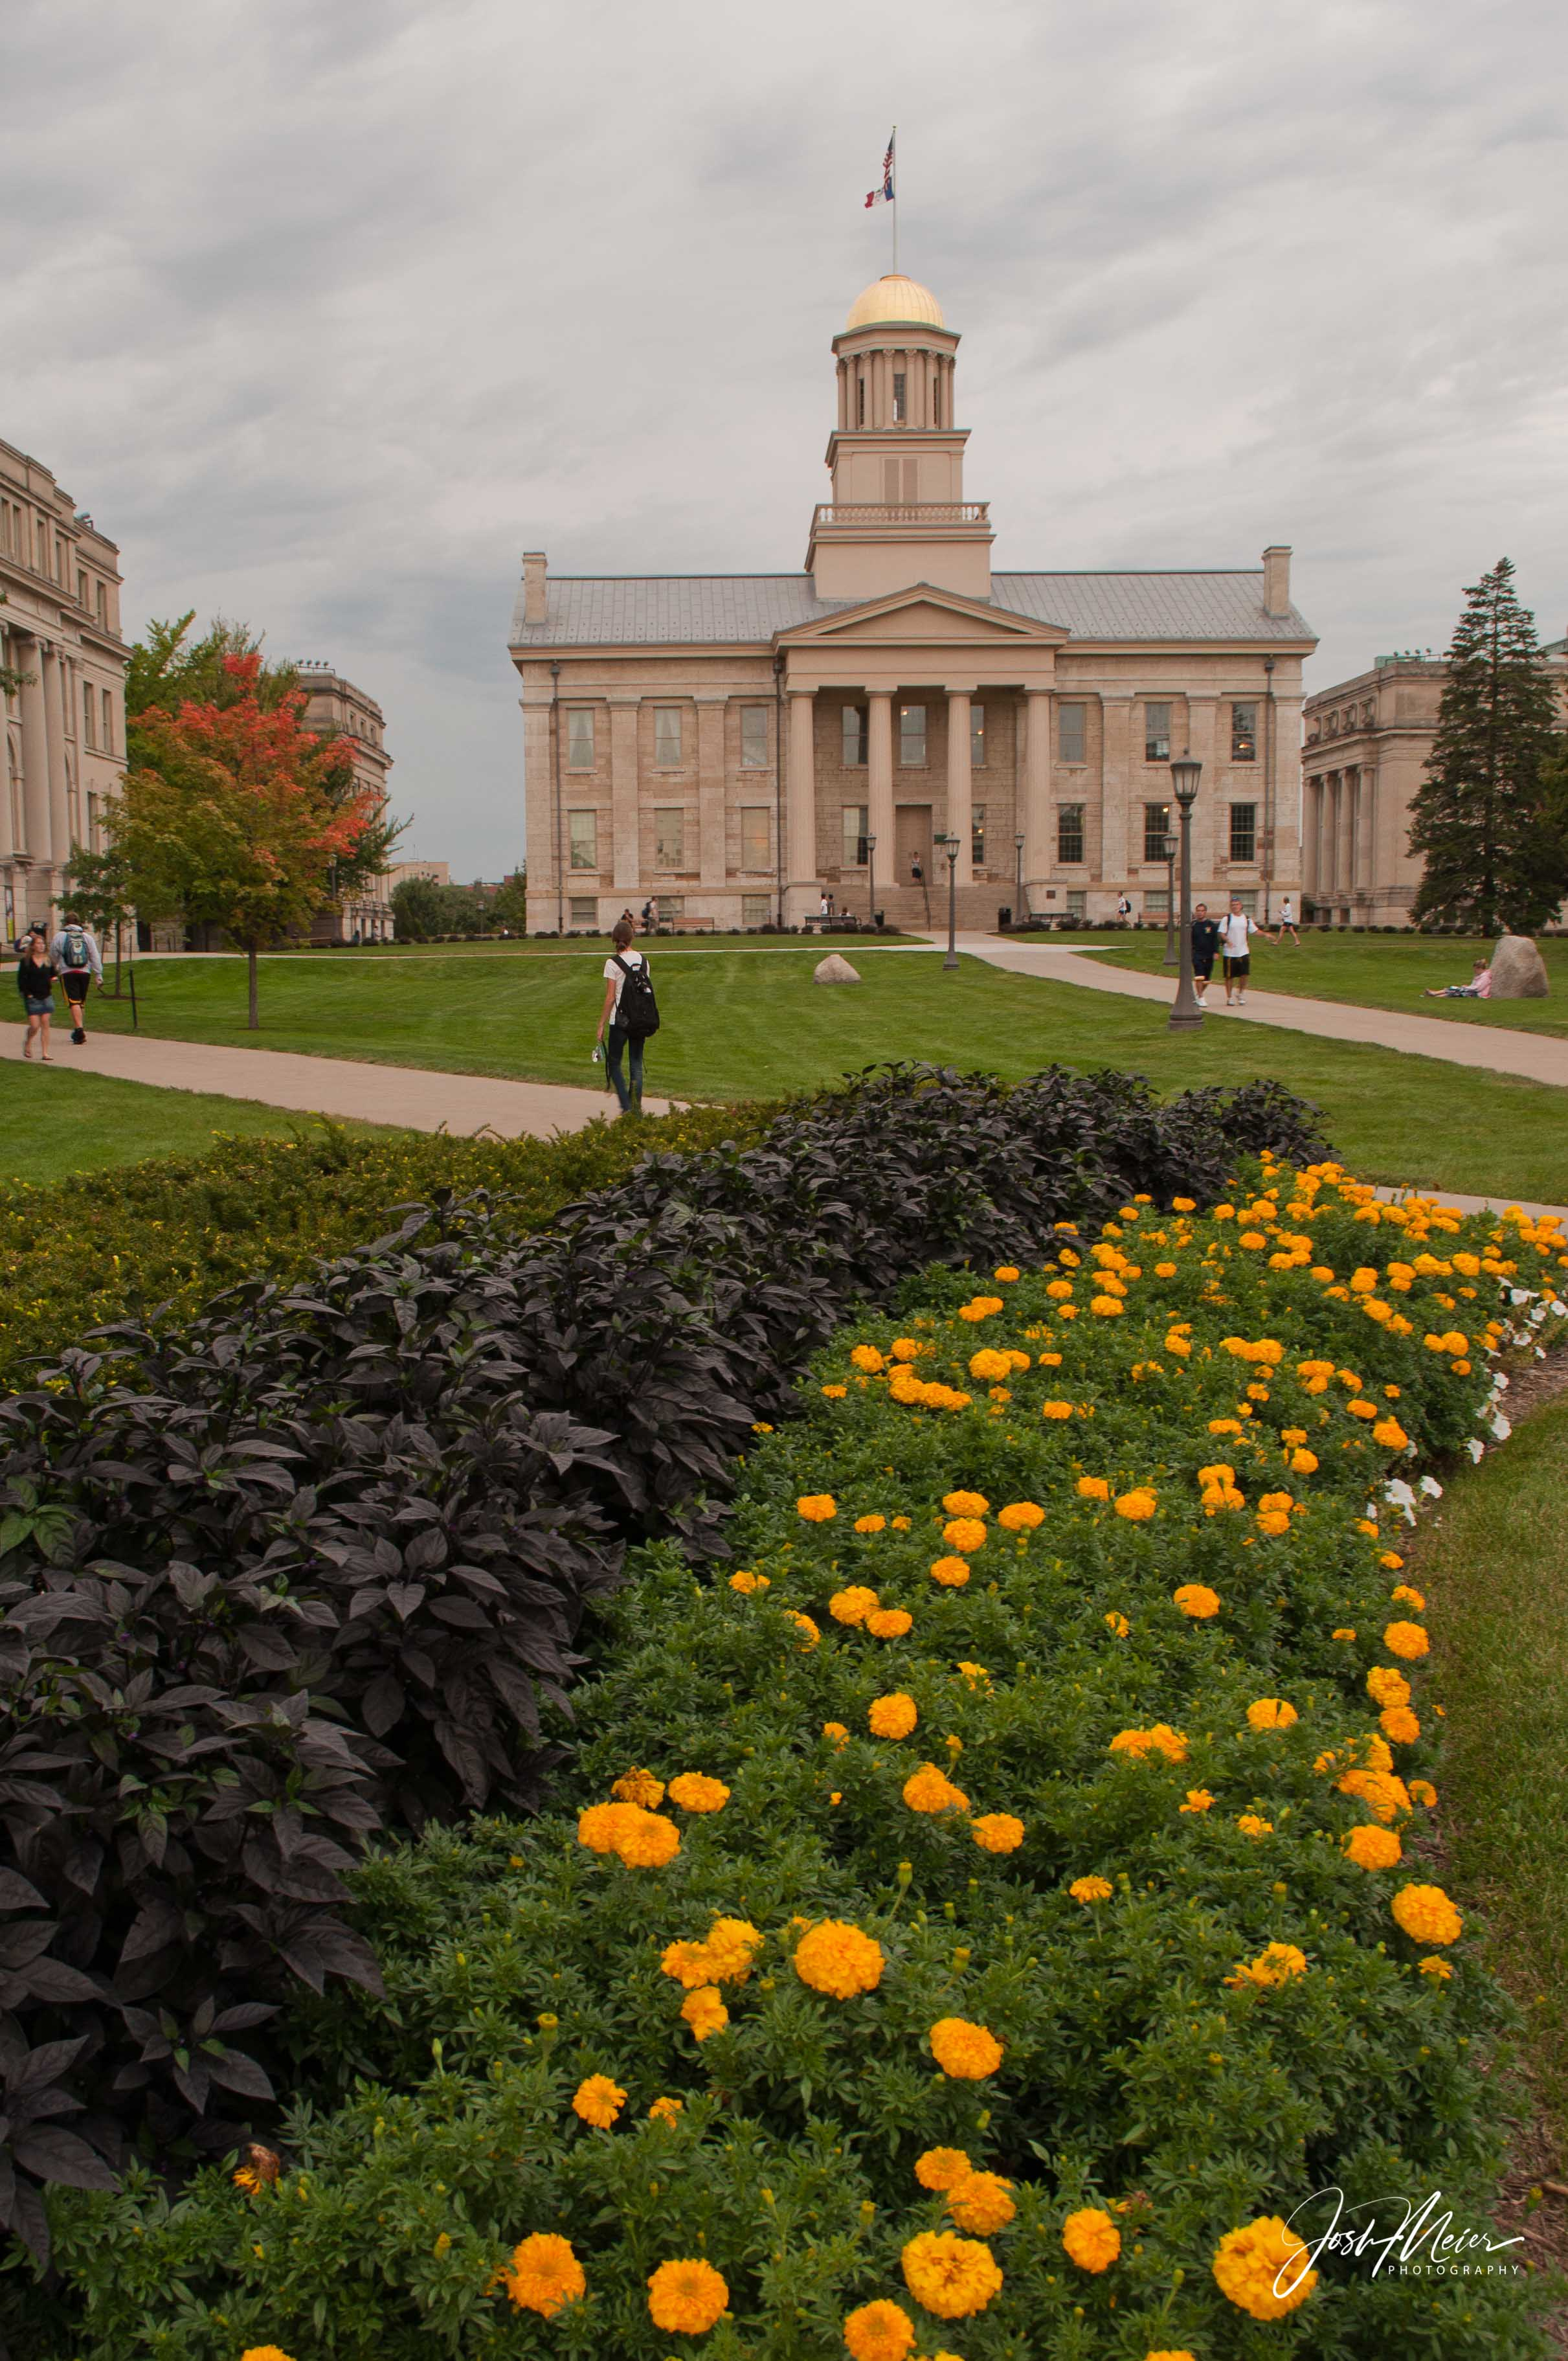 Old Capitol building at the heart of the University of Iowa campus.